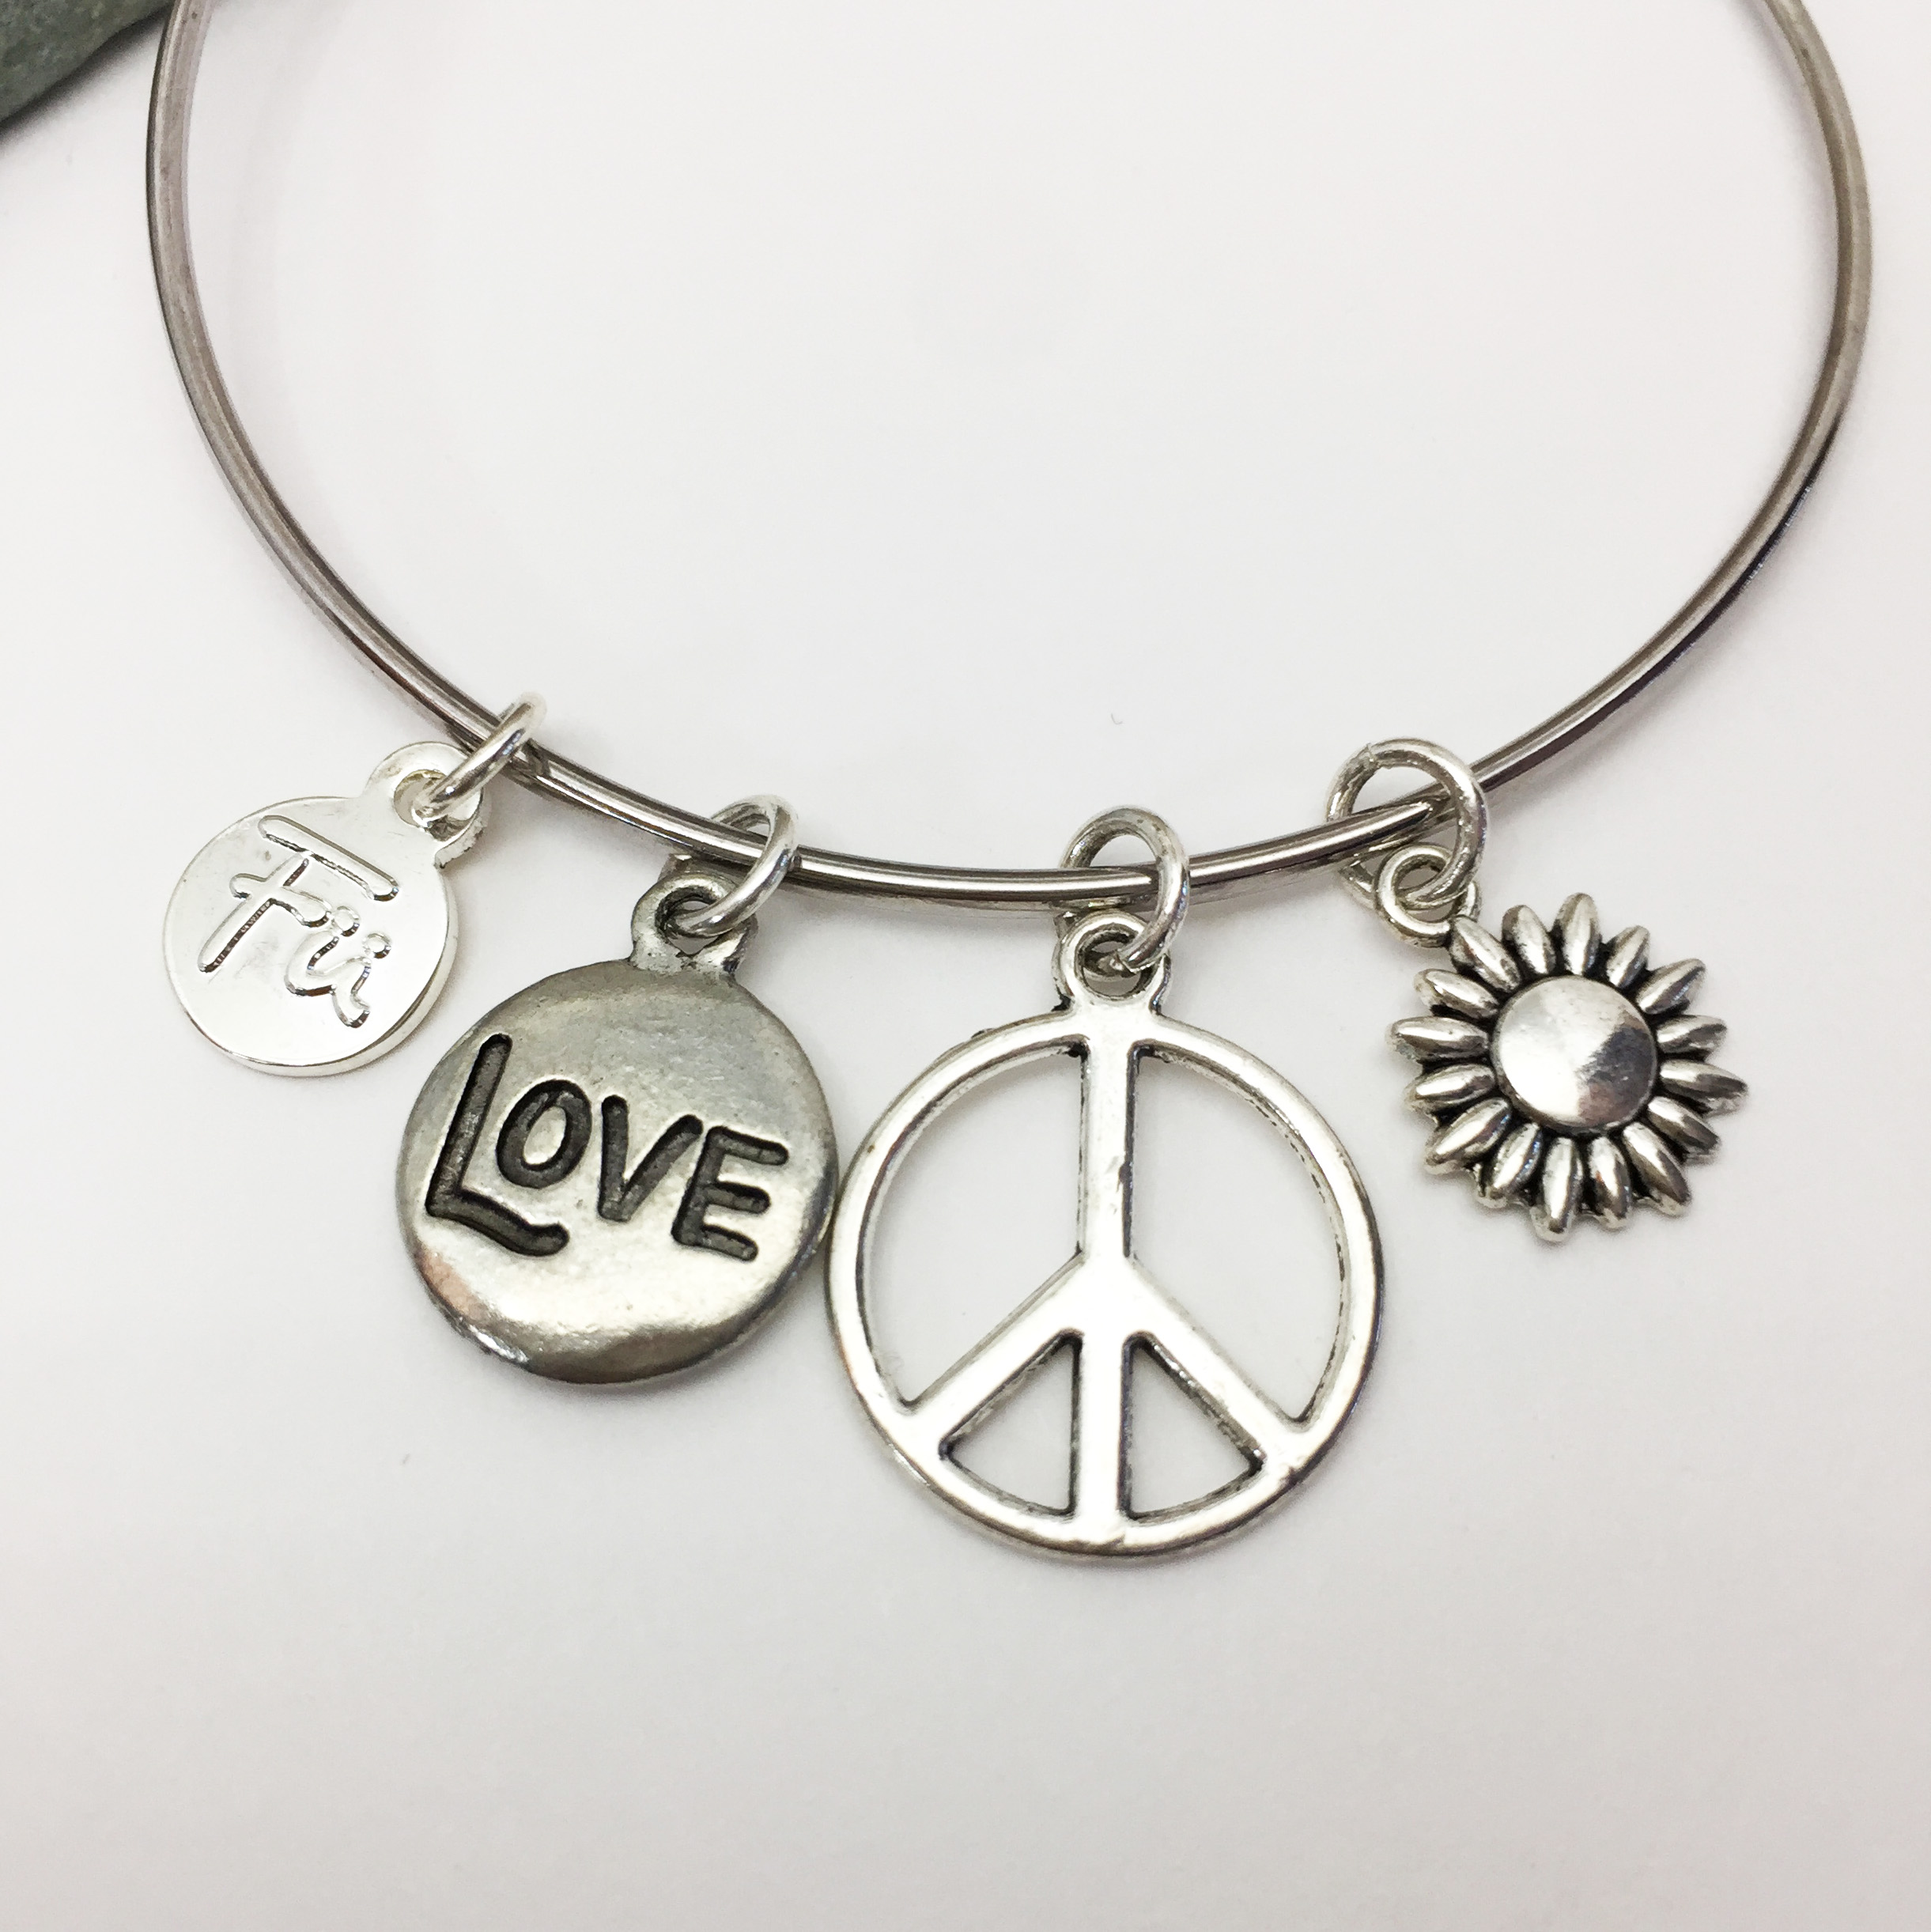 ctesta bracelet all s large bracelets chlo amor vincit love sign sophia conquers gold and chloe products silver peace or omnia